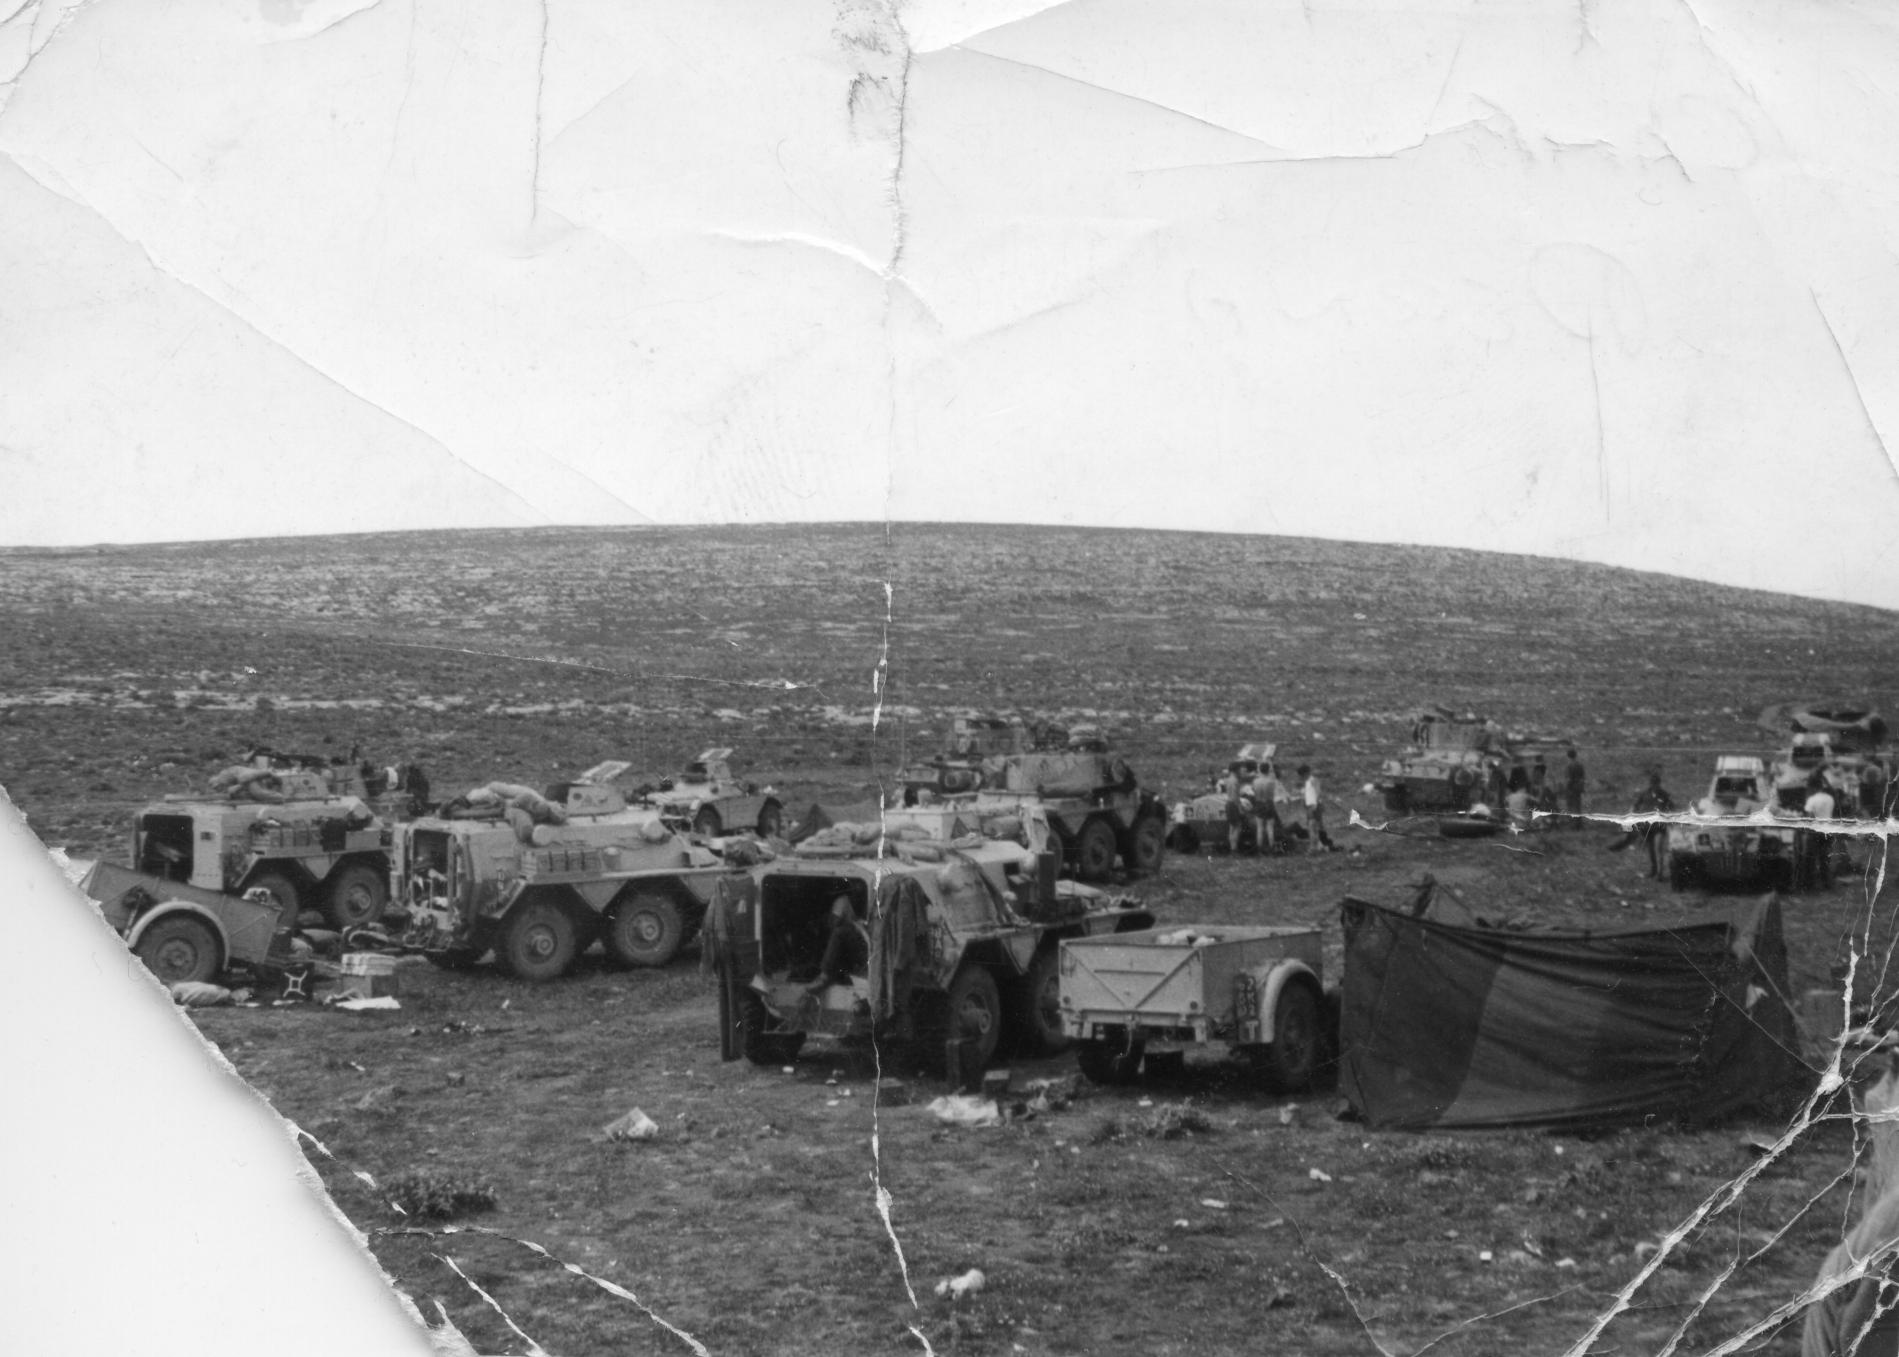 Camp_DERNA-1.jpg